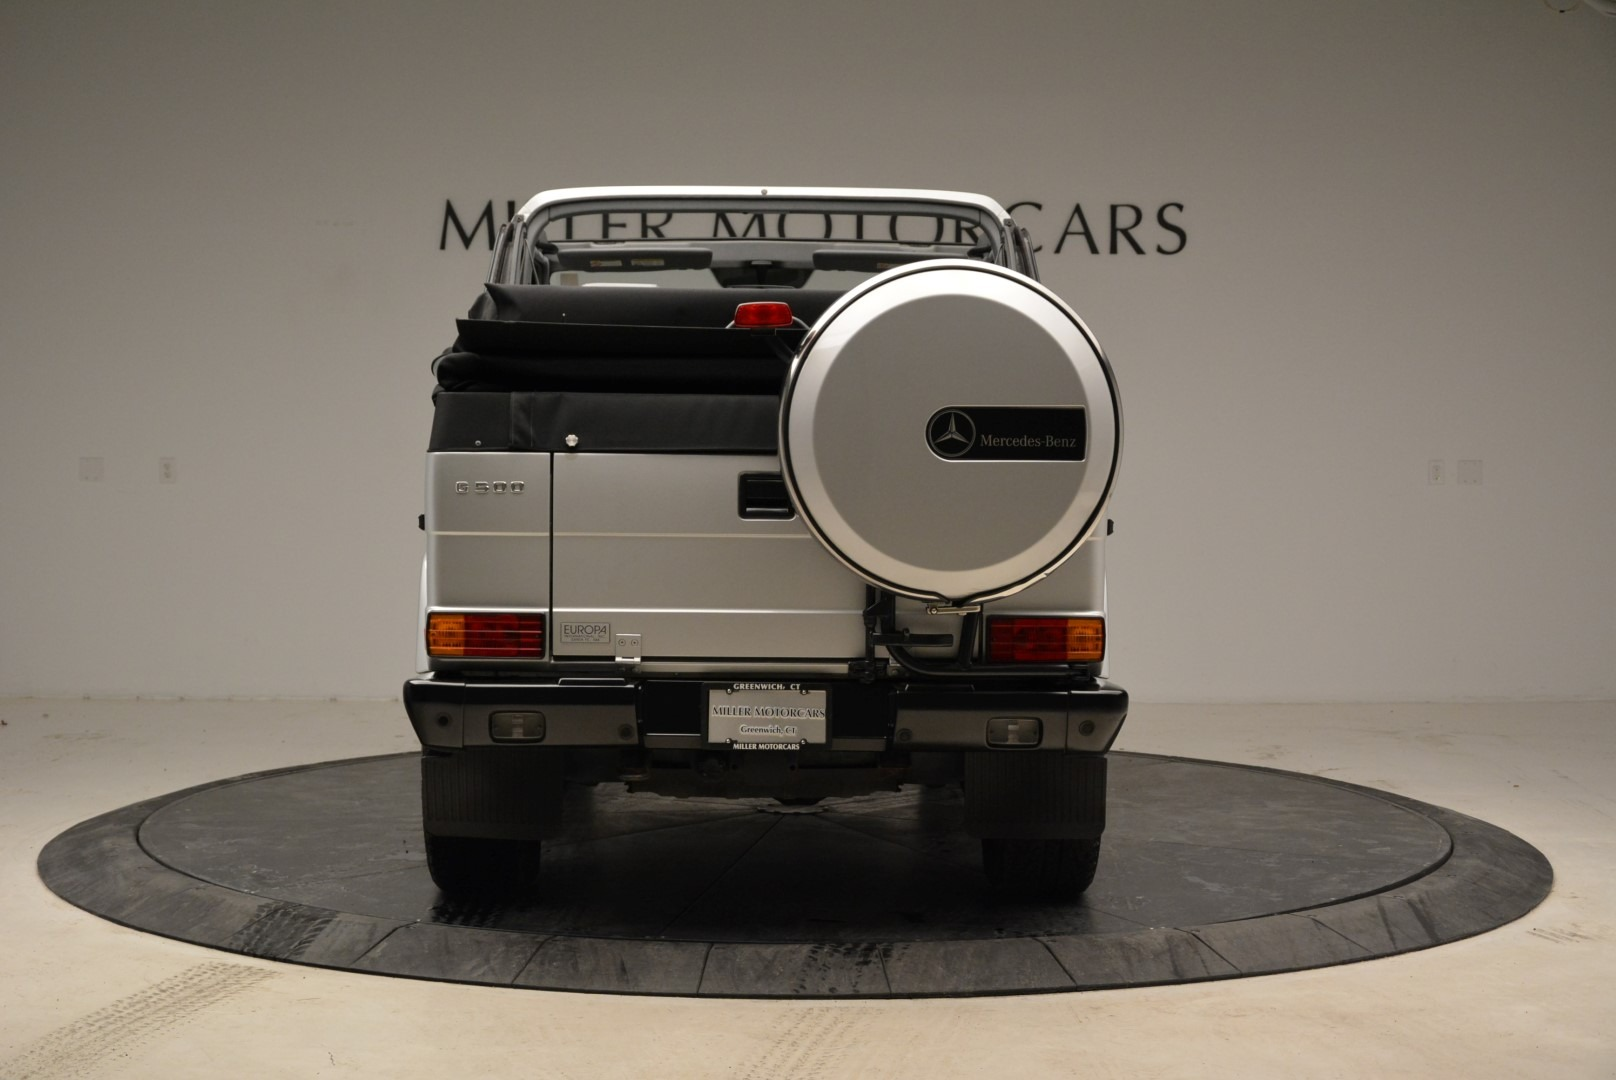 Used 1999 Mercedes Benz G500 Cabriolet For Sale In Greenwich, CT 1961_p6